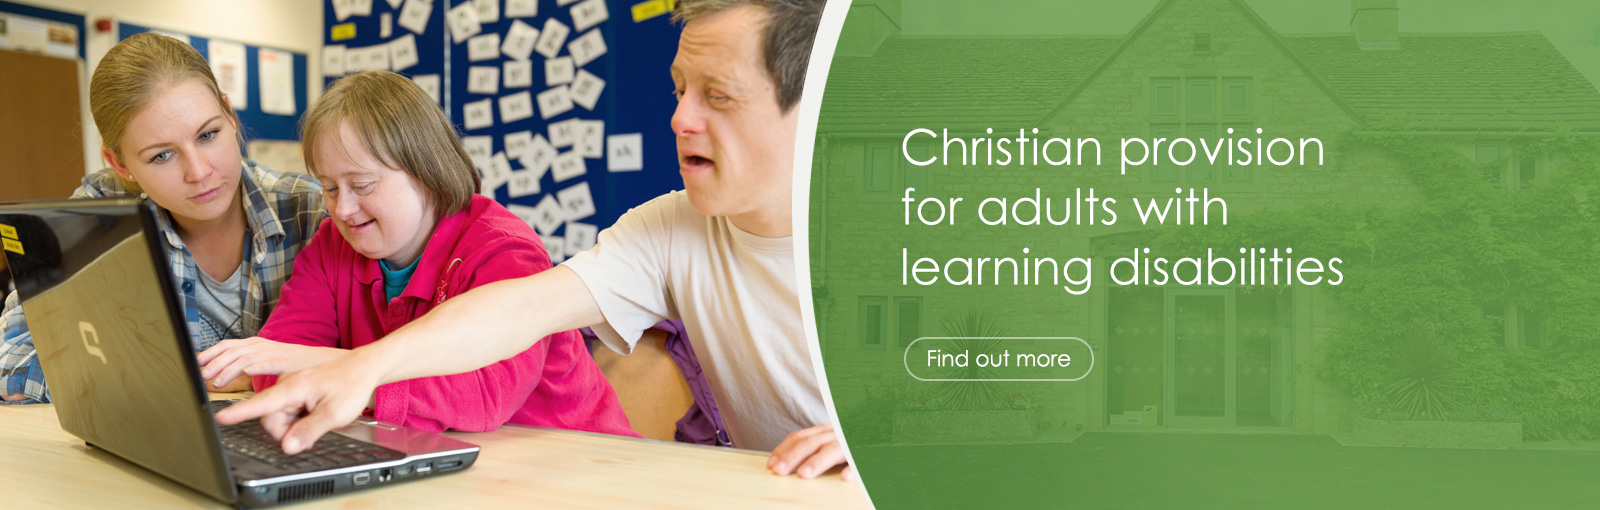 Christian provision for adults with learning disabilities